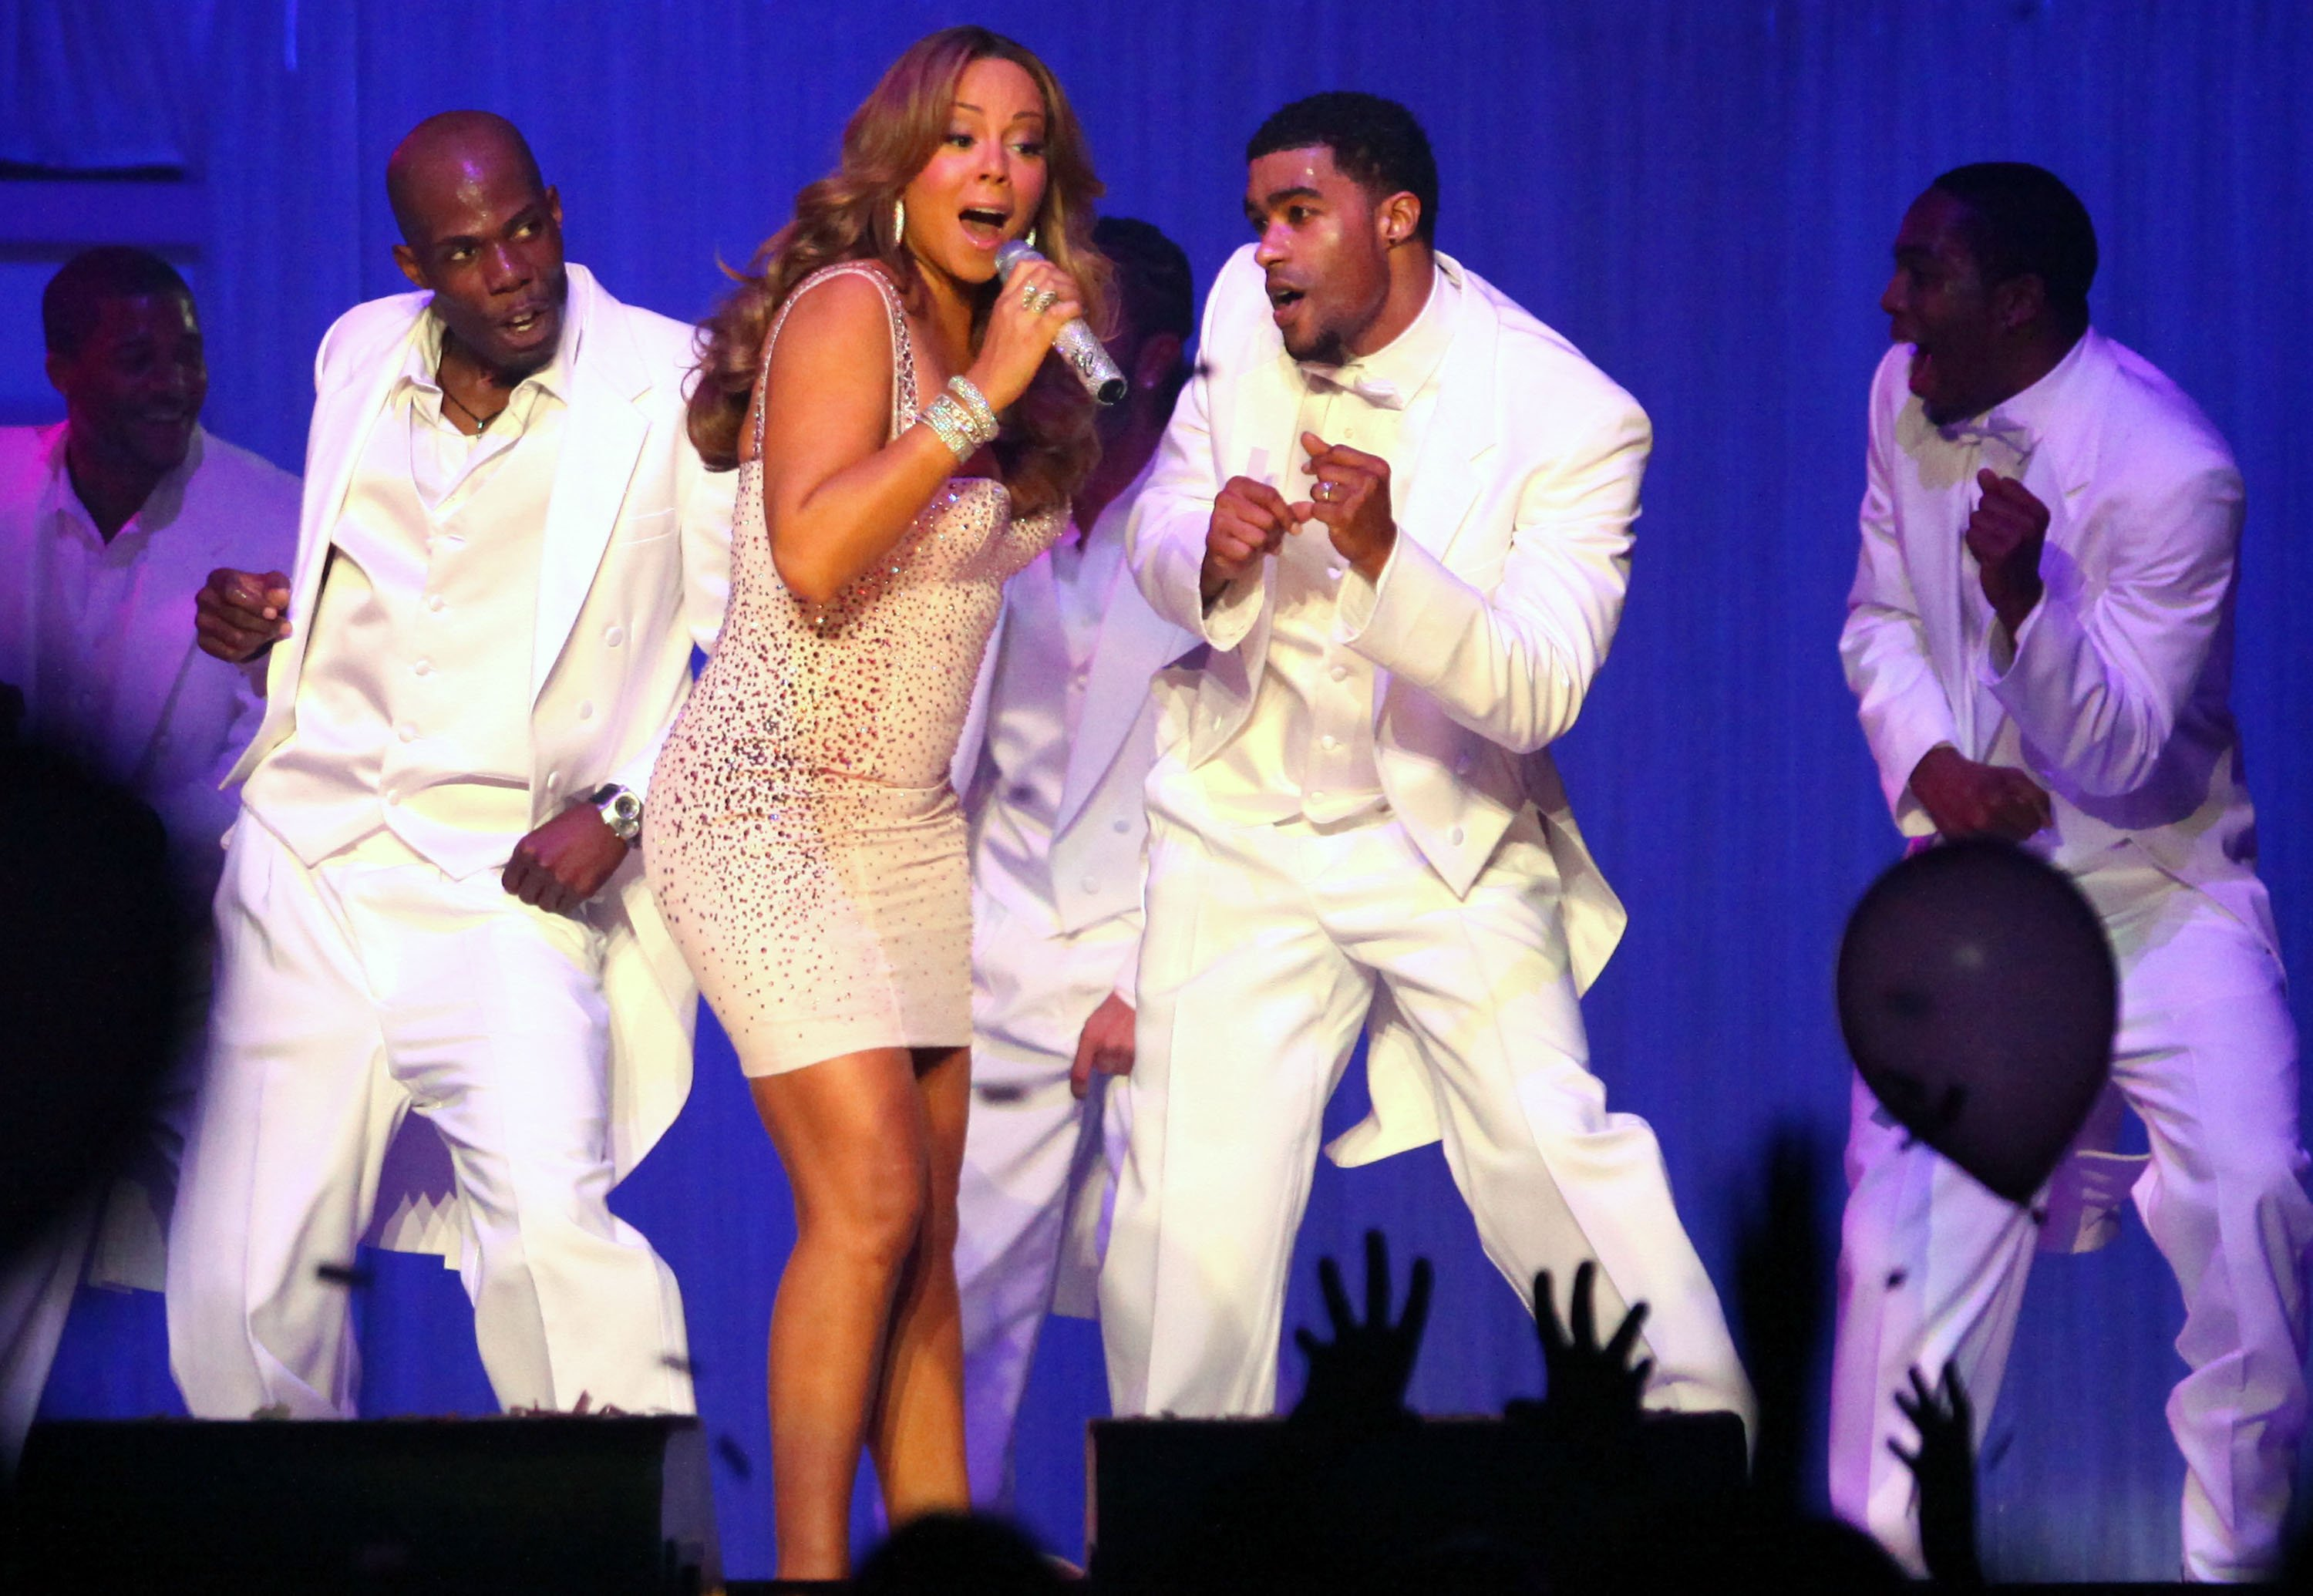 53781_Mariah_Carey_performs_at_Madison_Square_Garden_in_New_York_City_122_454lo.jpg